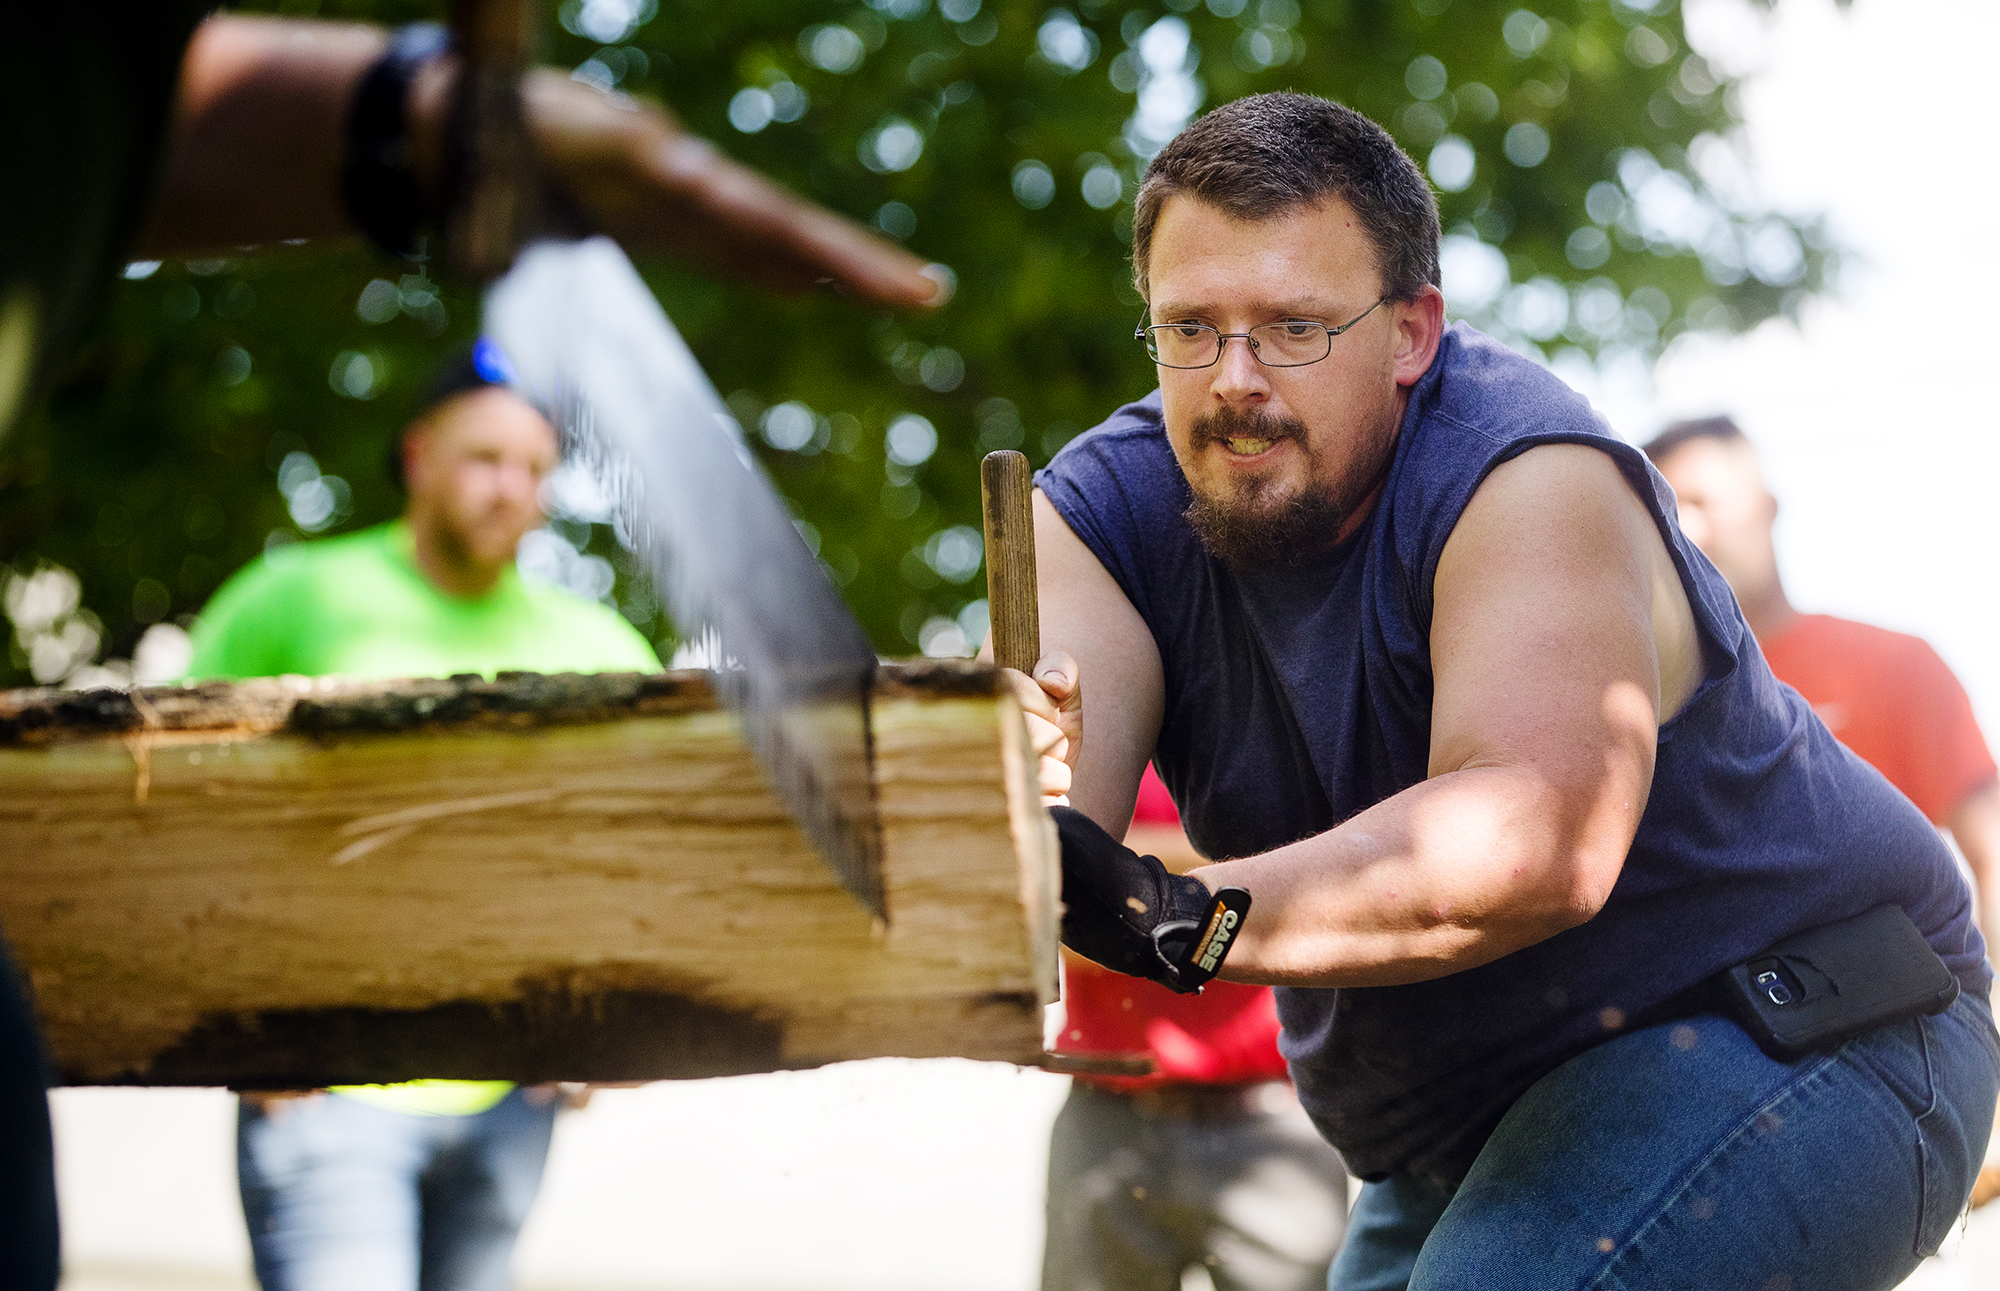 Jonathon Norin competes in a cross cut competition Abraham Lincoln National Railsplitting Festival at the Postville Courthouse in Lincoln Saturday, Sept. 15, 2018. [Ted Schurter/The State Journal-Register]